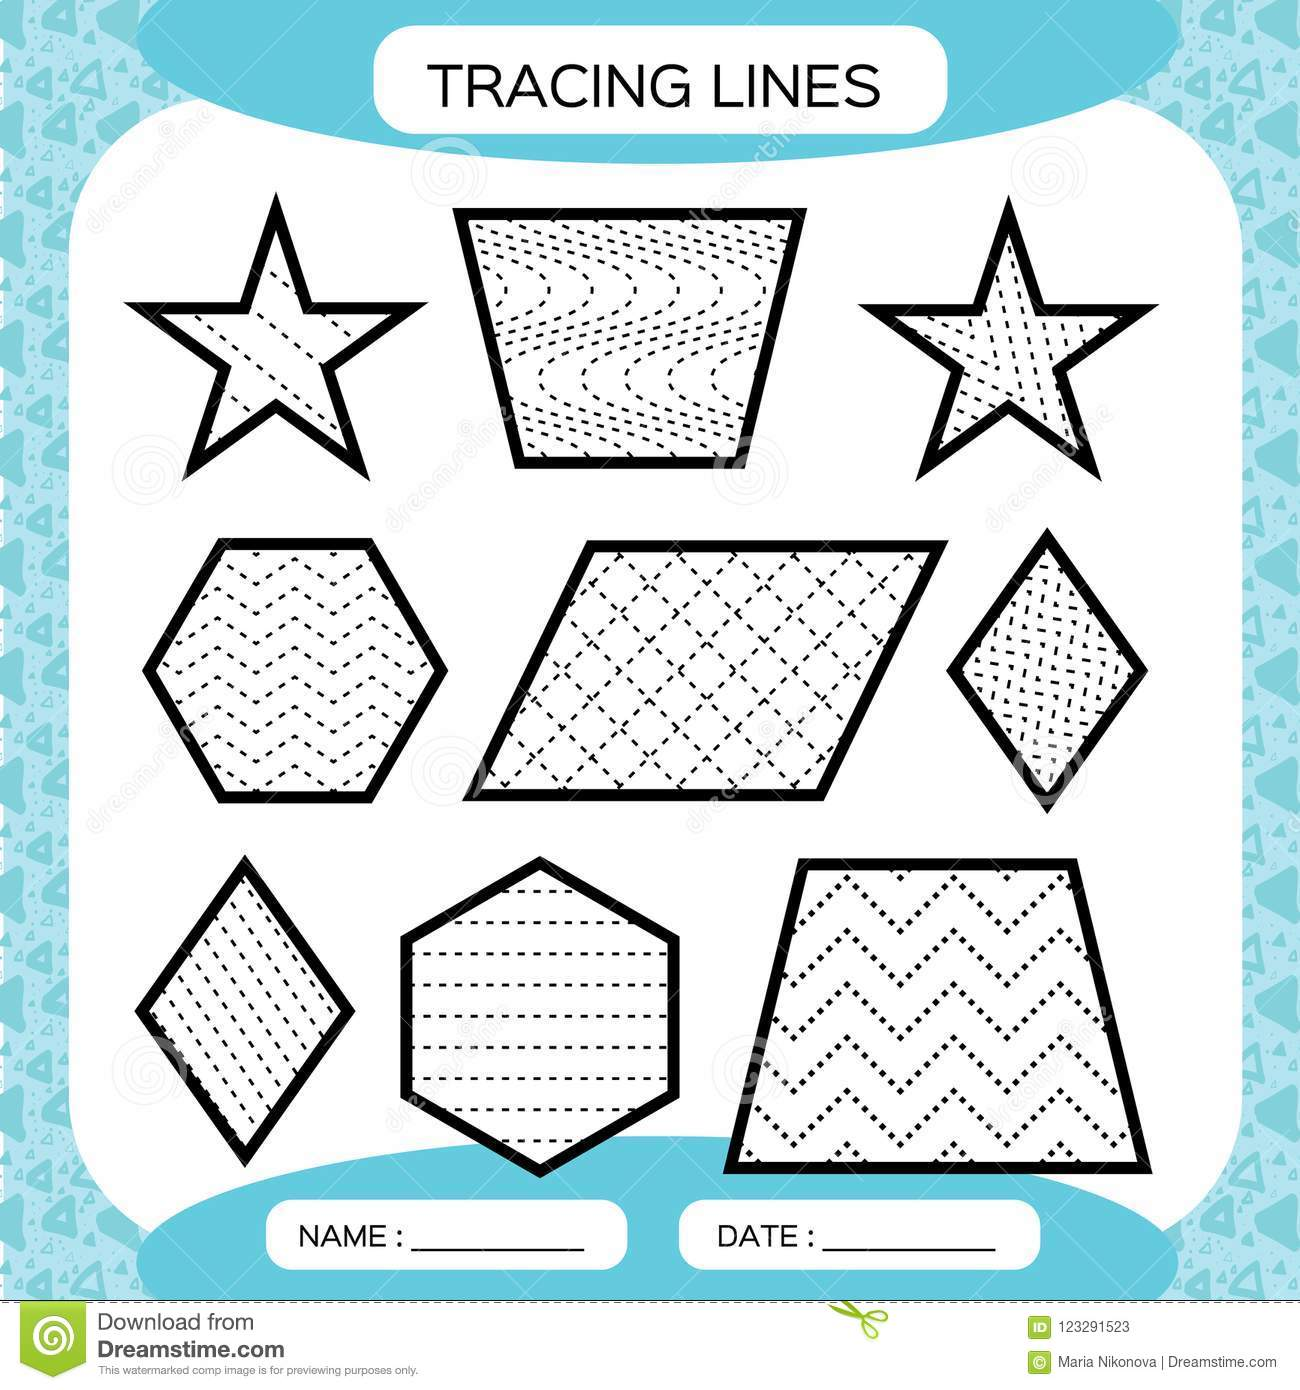 Tracing Lines Kids Education Preschool Worksheet Basic